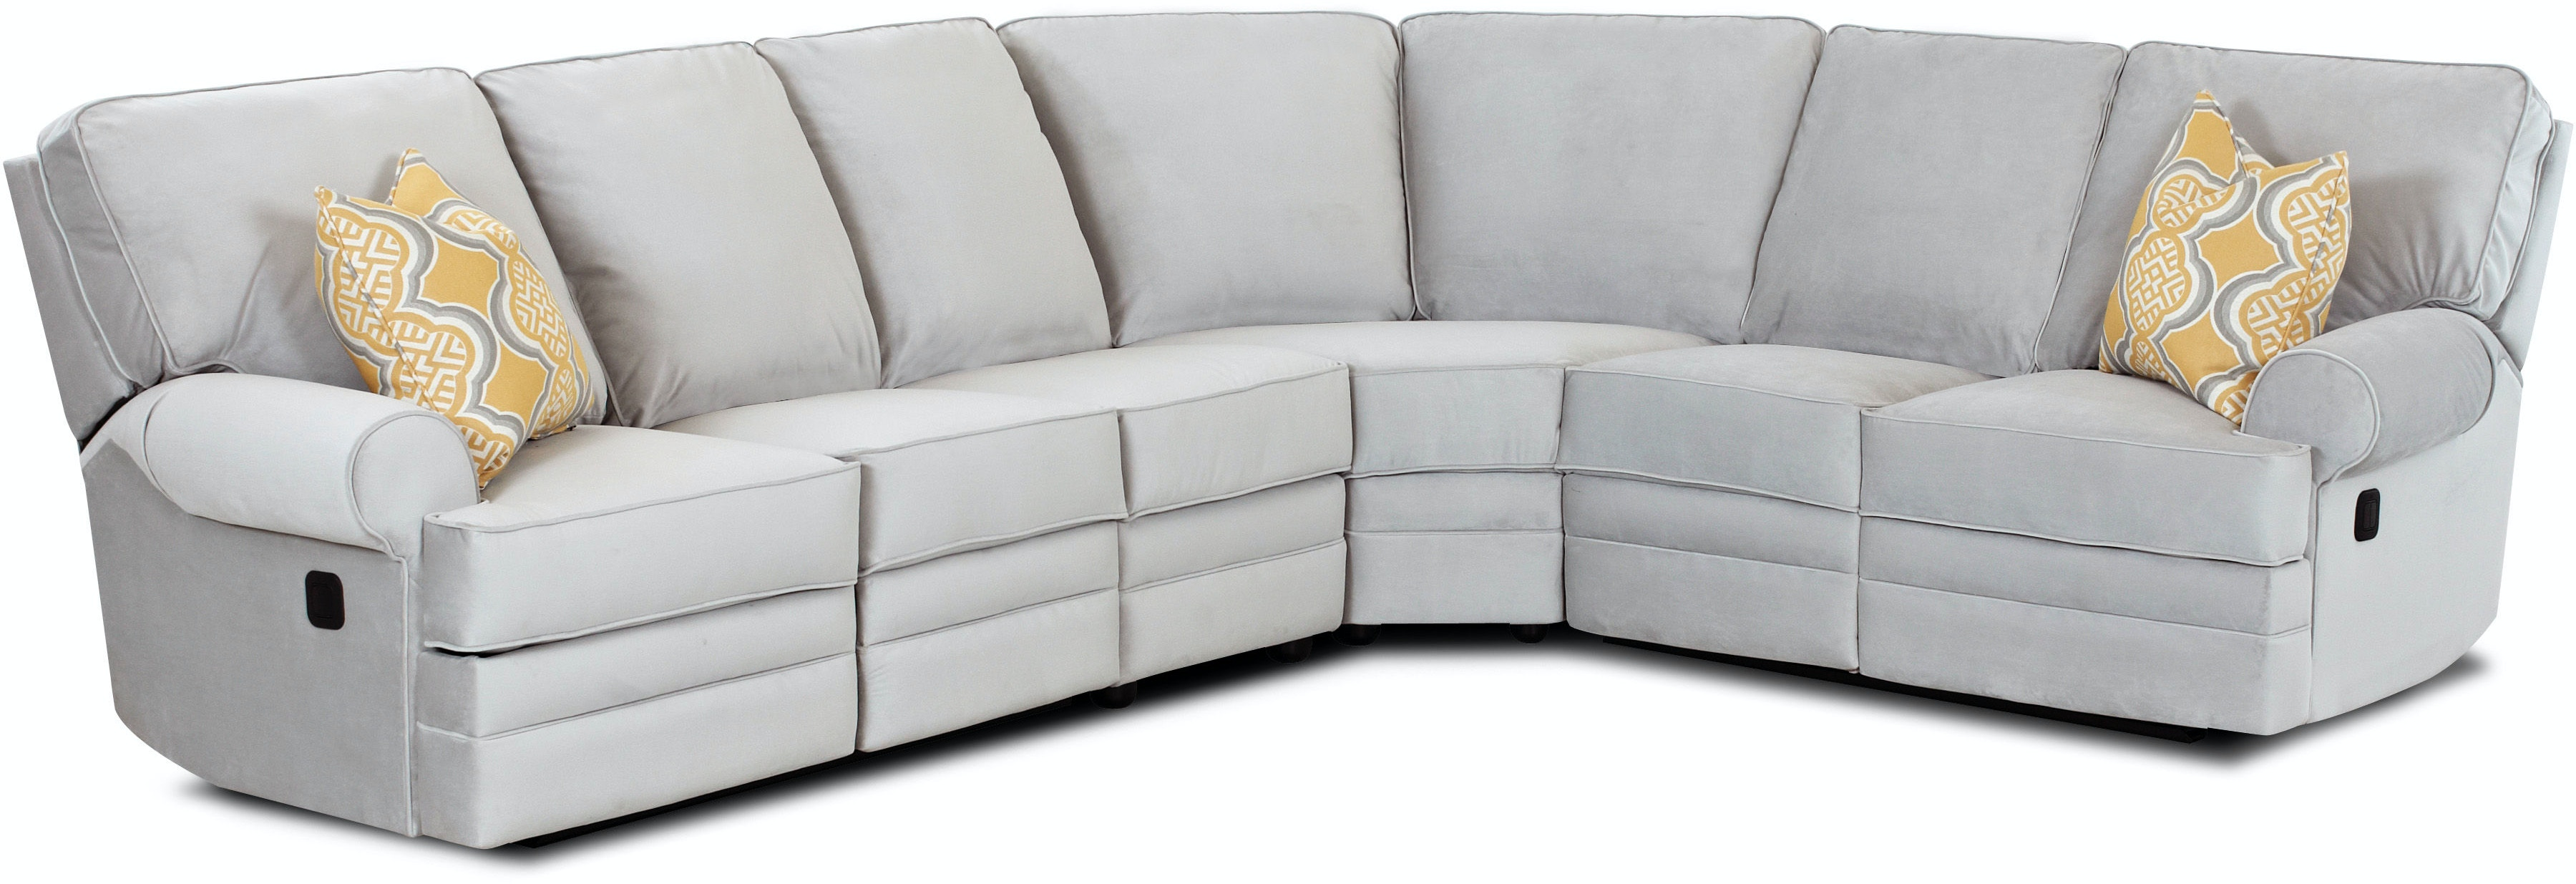 what is the best color for bedroom walls klaussner living room belleview 21303 fab sect sofas 21303